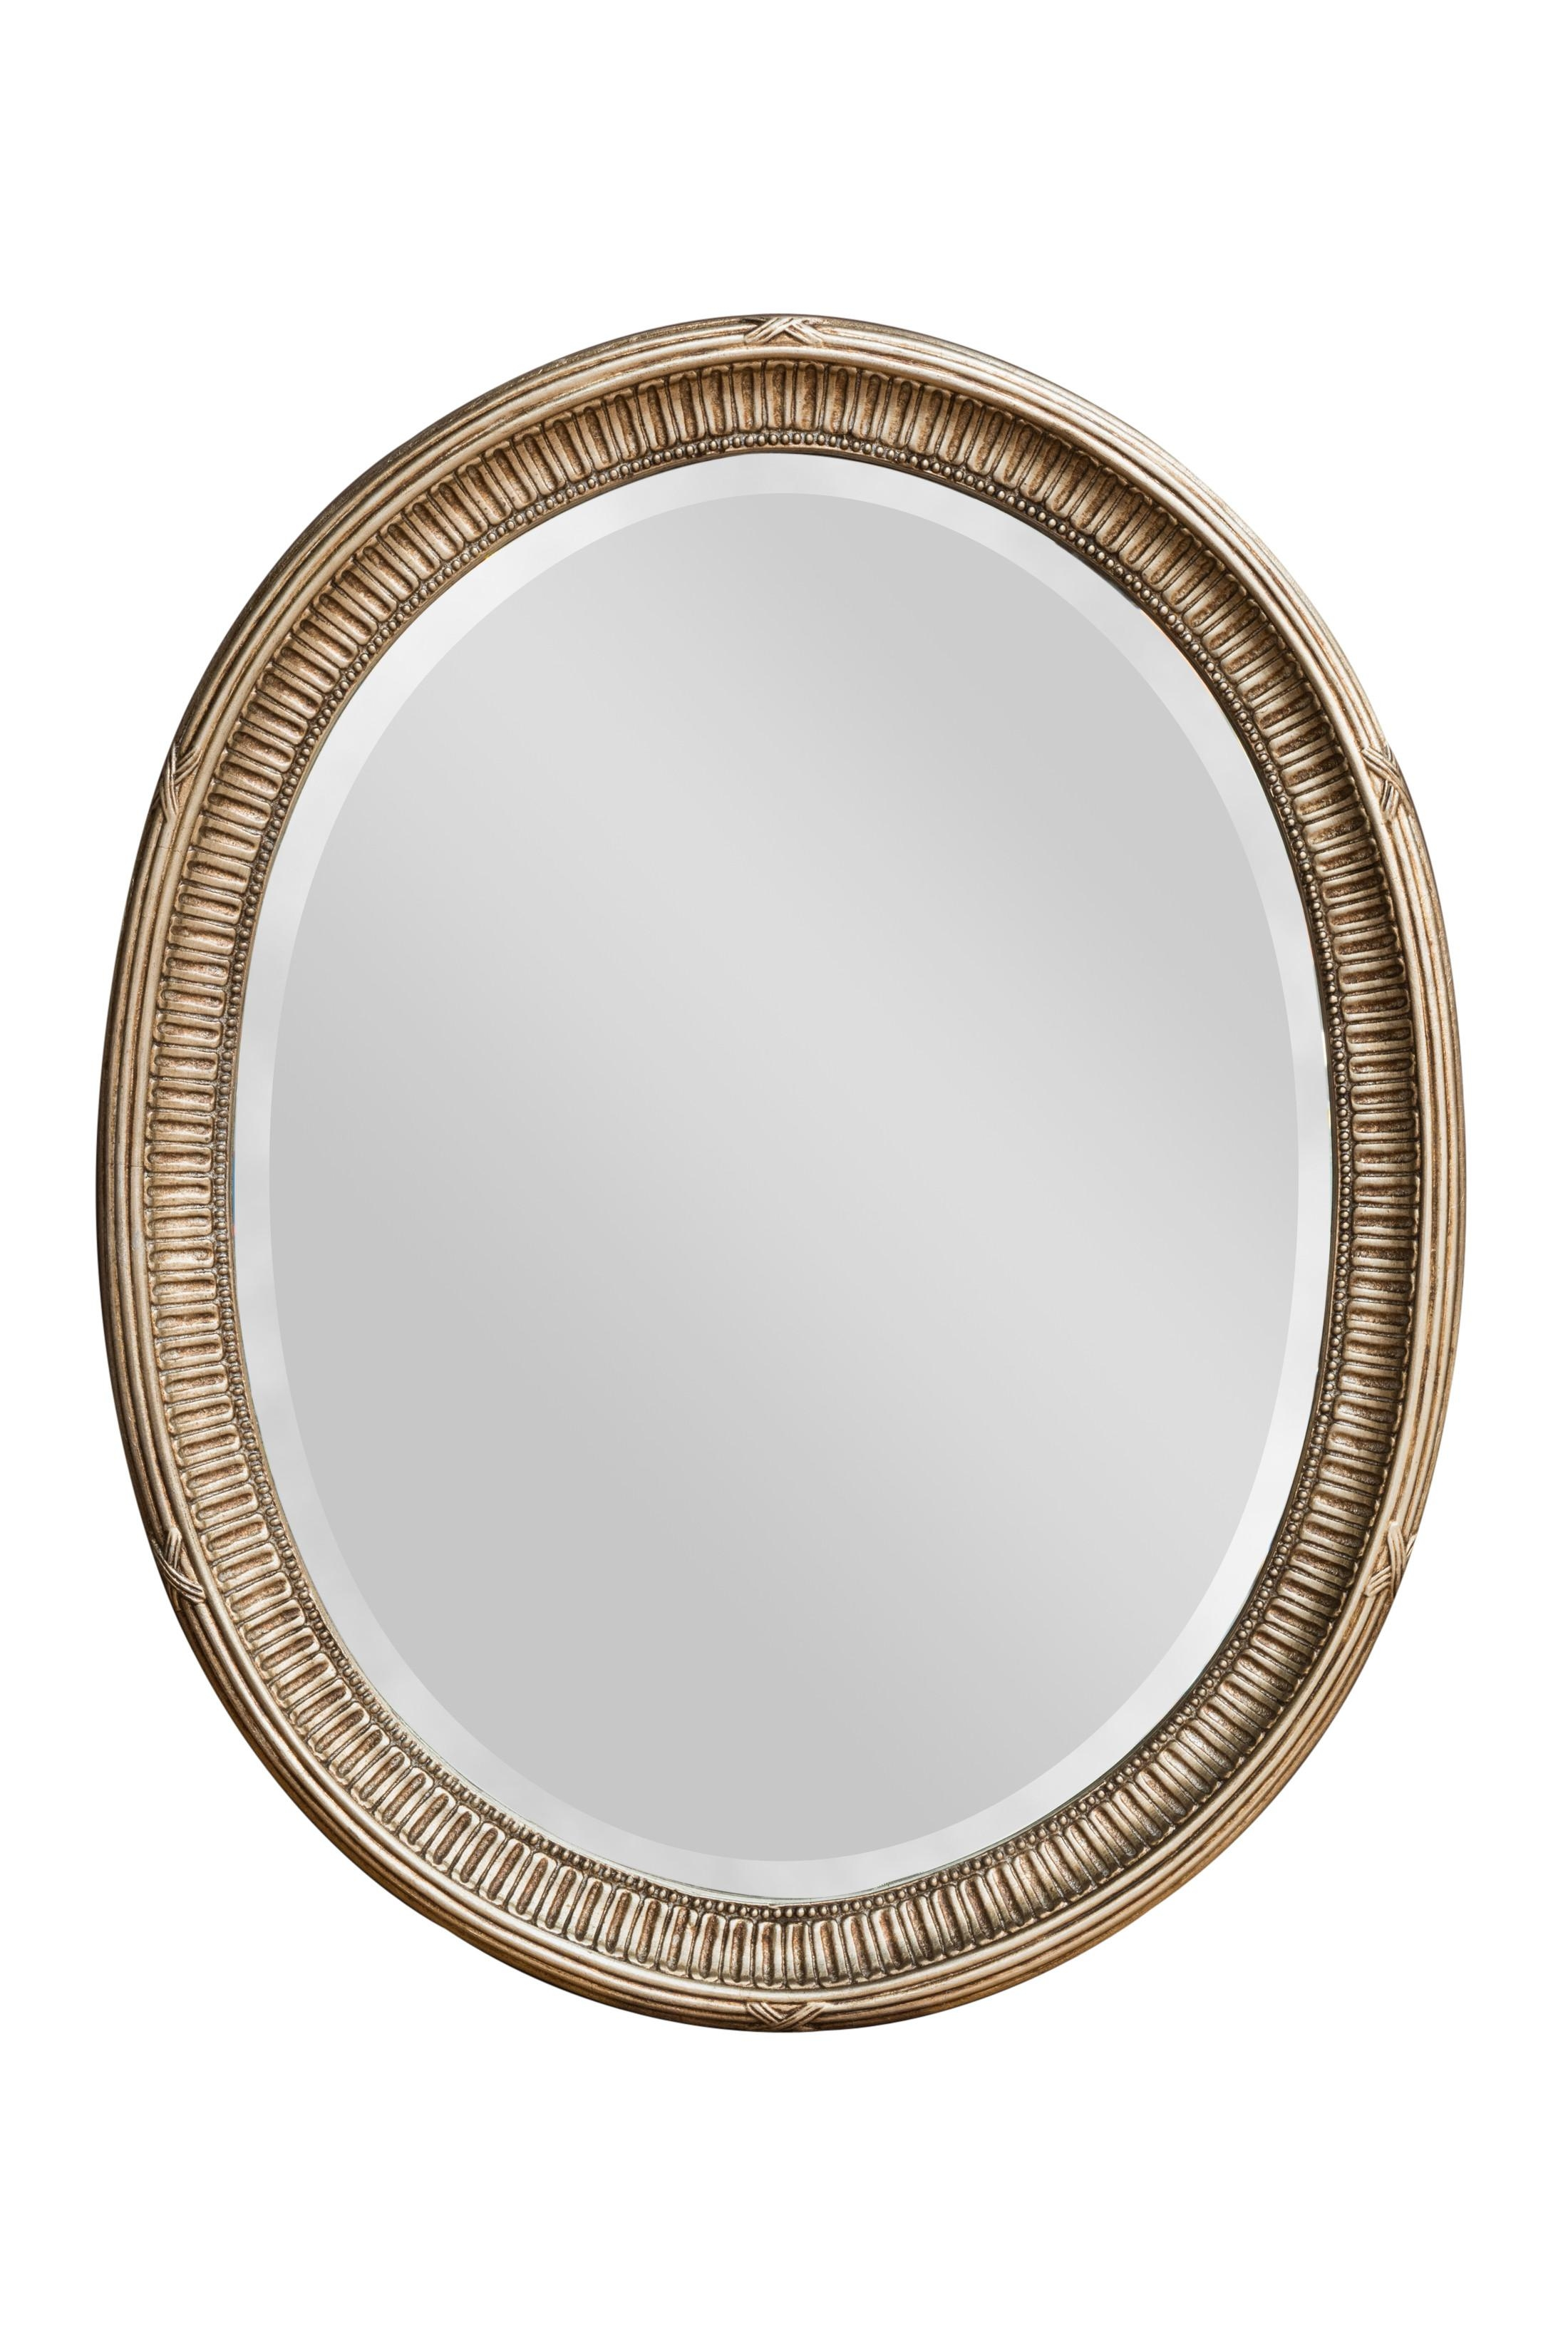 Adam Silver Oval Mirror | Bedroom Mirrors For Sale – Panfili With Oval Silver Mirror (Image 1 of 20)